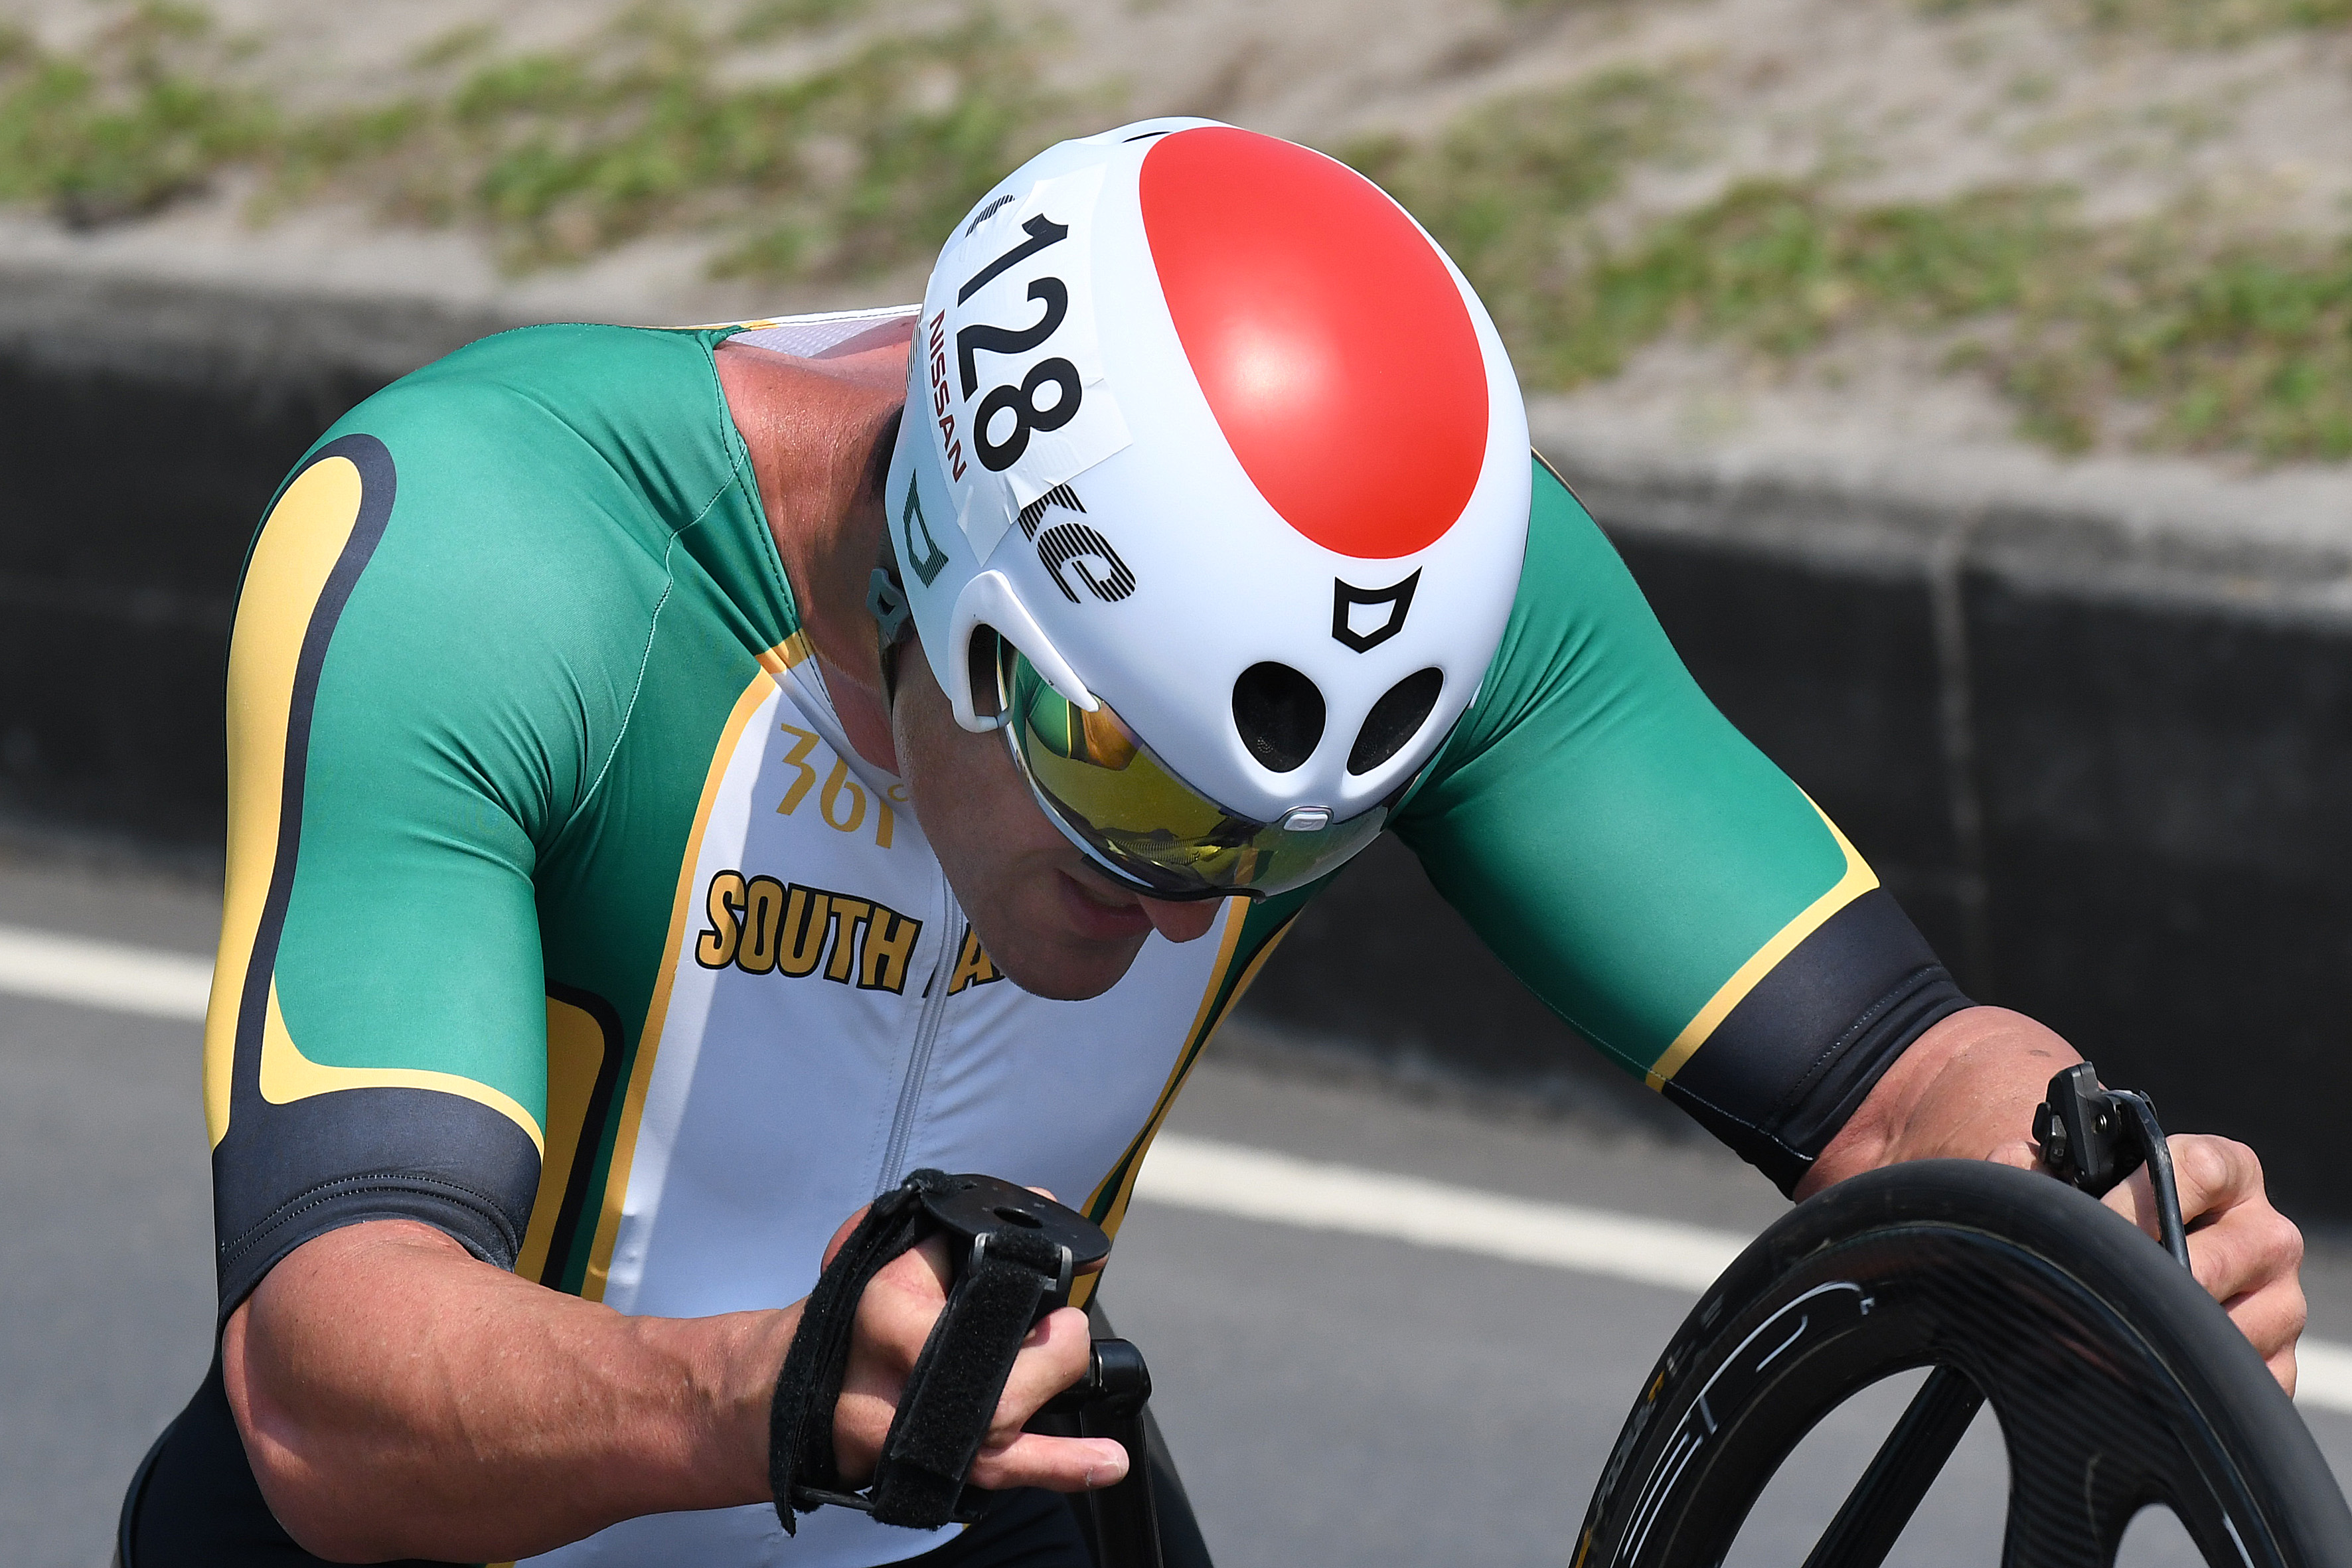 Sithole just misses bronze and cyclists Van Dyk, Asher grab fifth